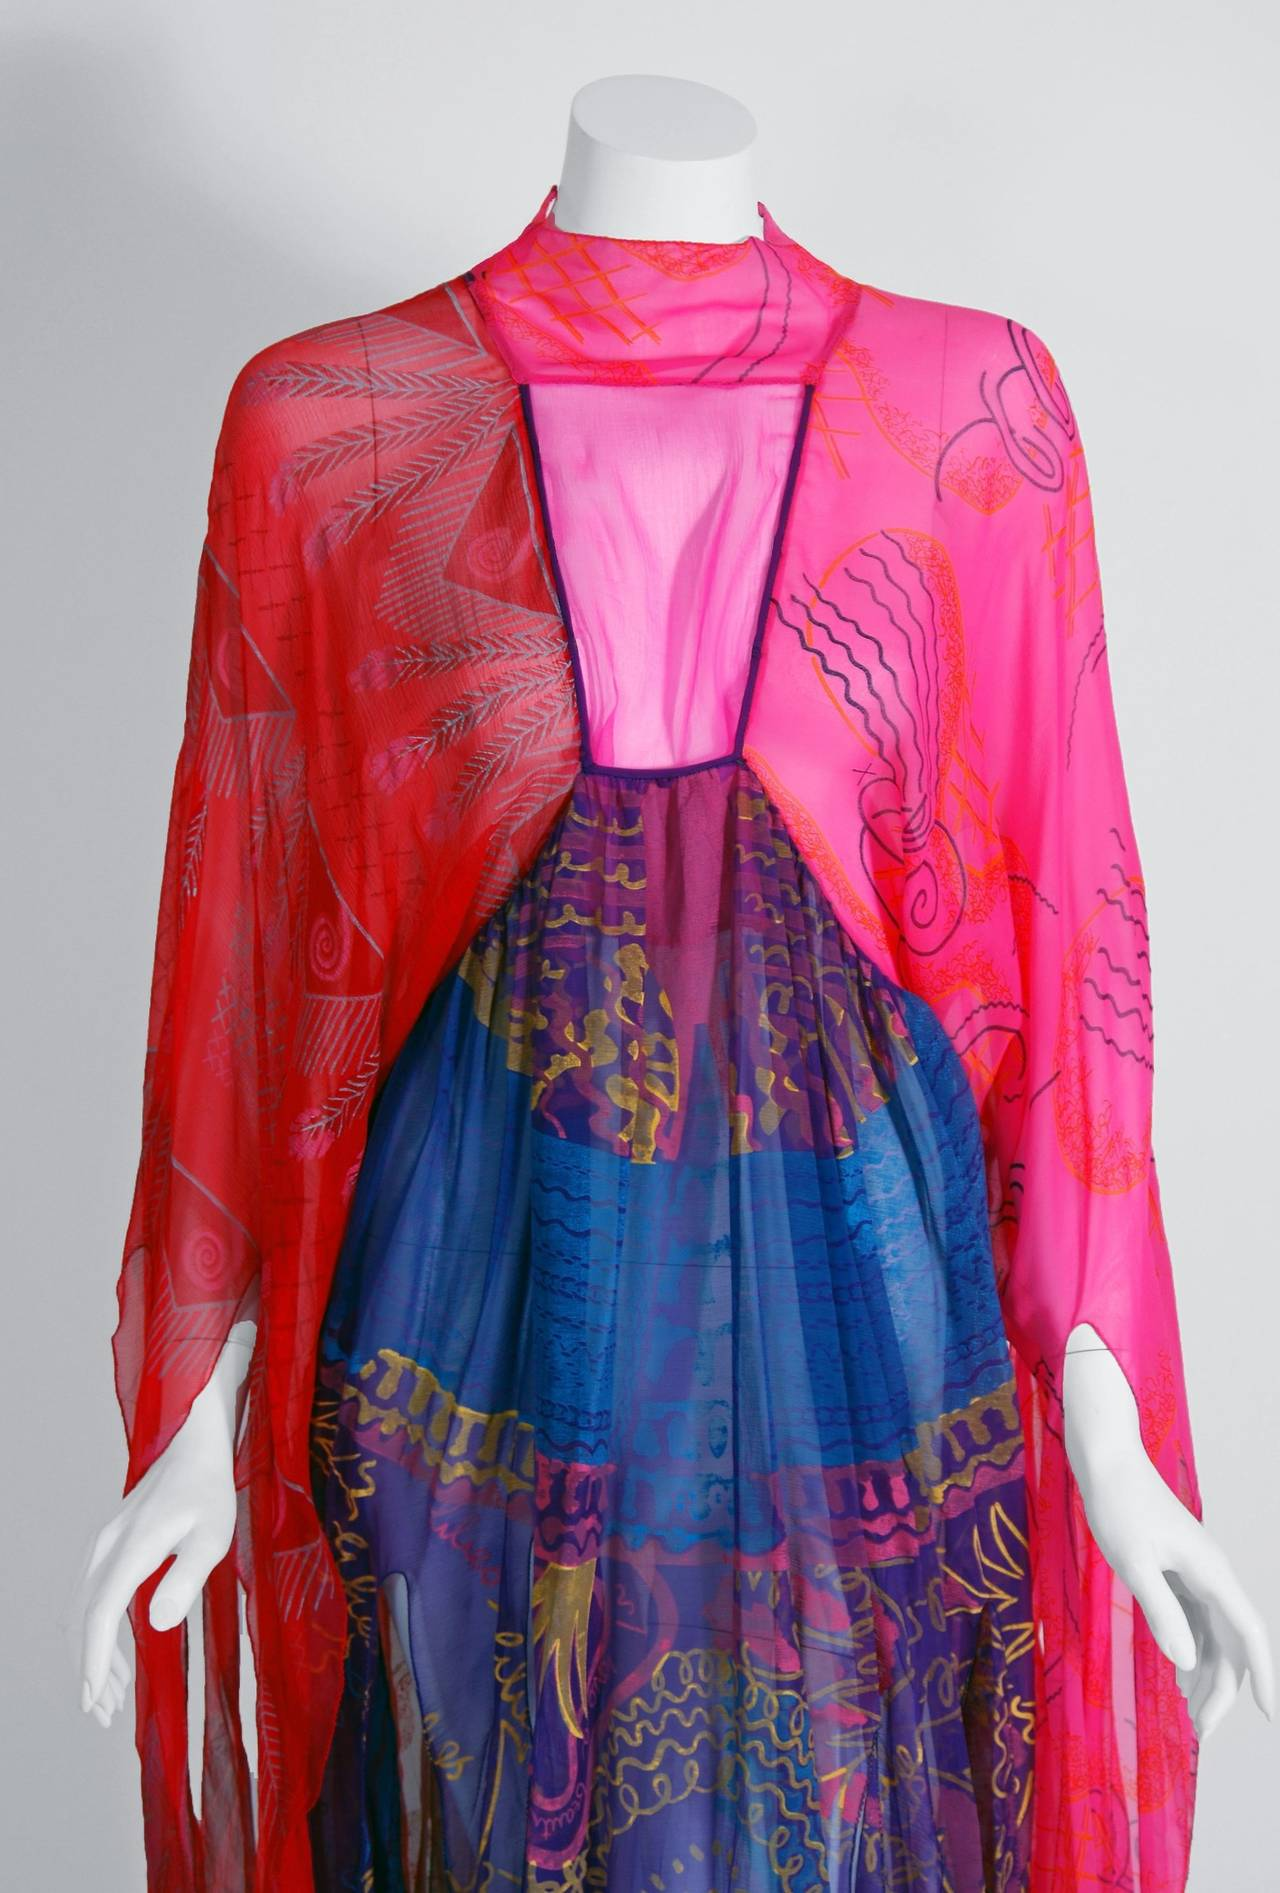 Zandra Rhodes was one of the British designers who put London at the forefront of the international fashion scene in the 1970's. Her designs are considered creative statements, dramatic but graceful, bold but feminine. Zandra is renowned for her use